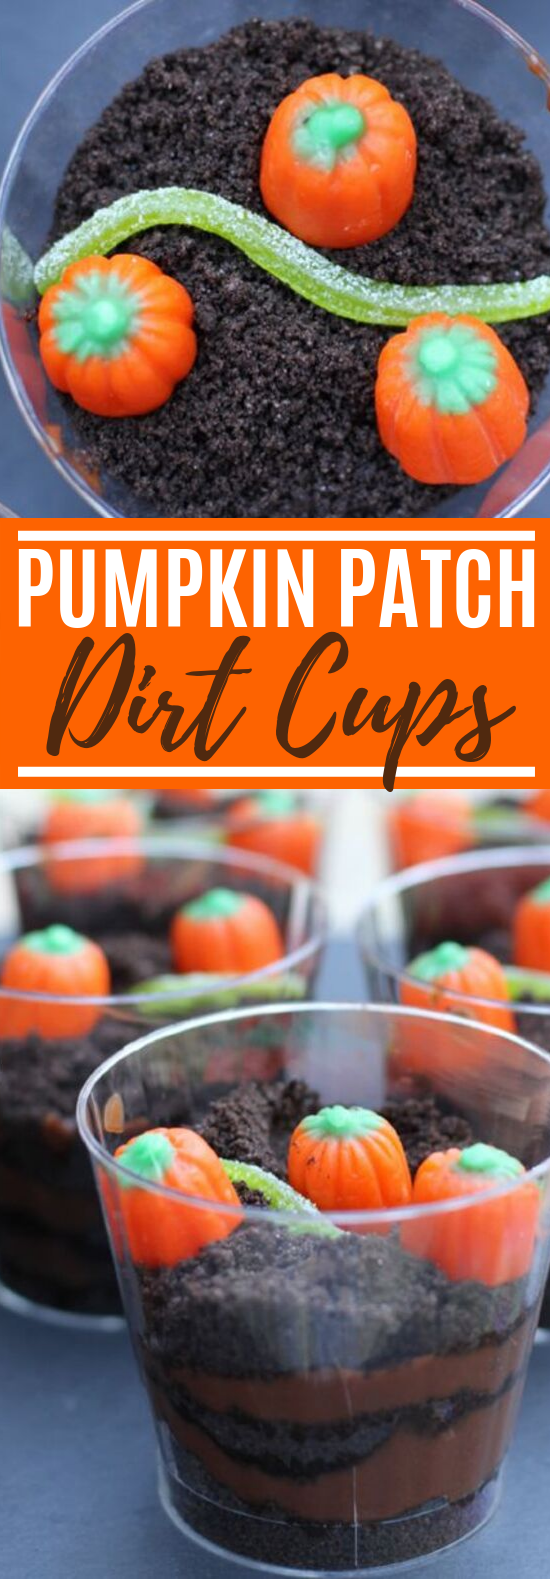 Pumpkin Patch Dirt Cups #desserts #pumpkin